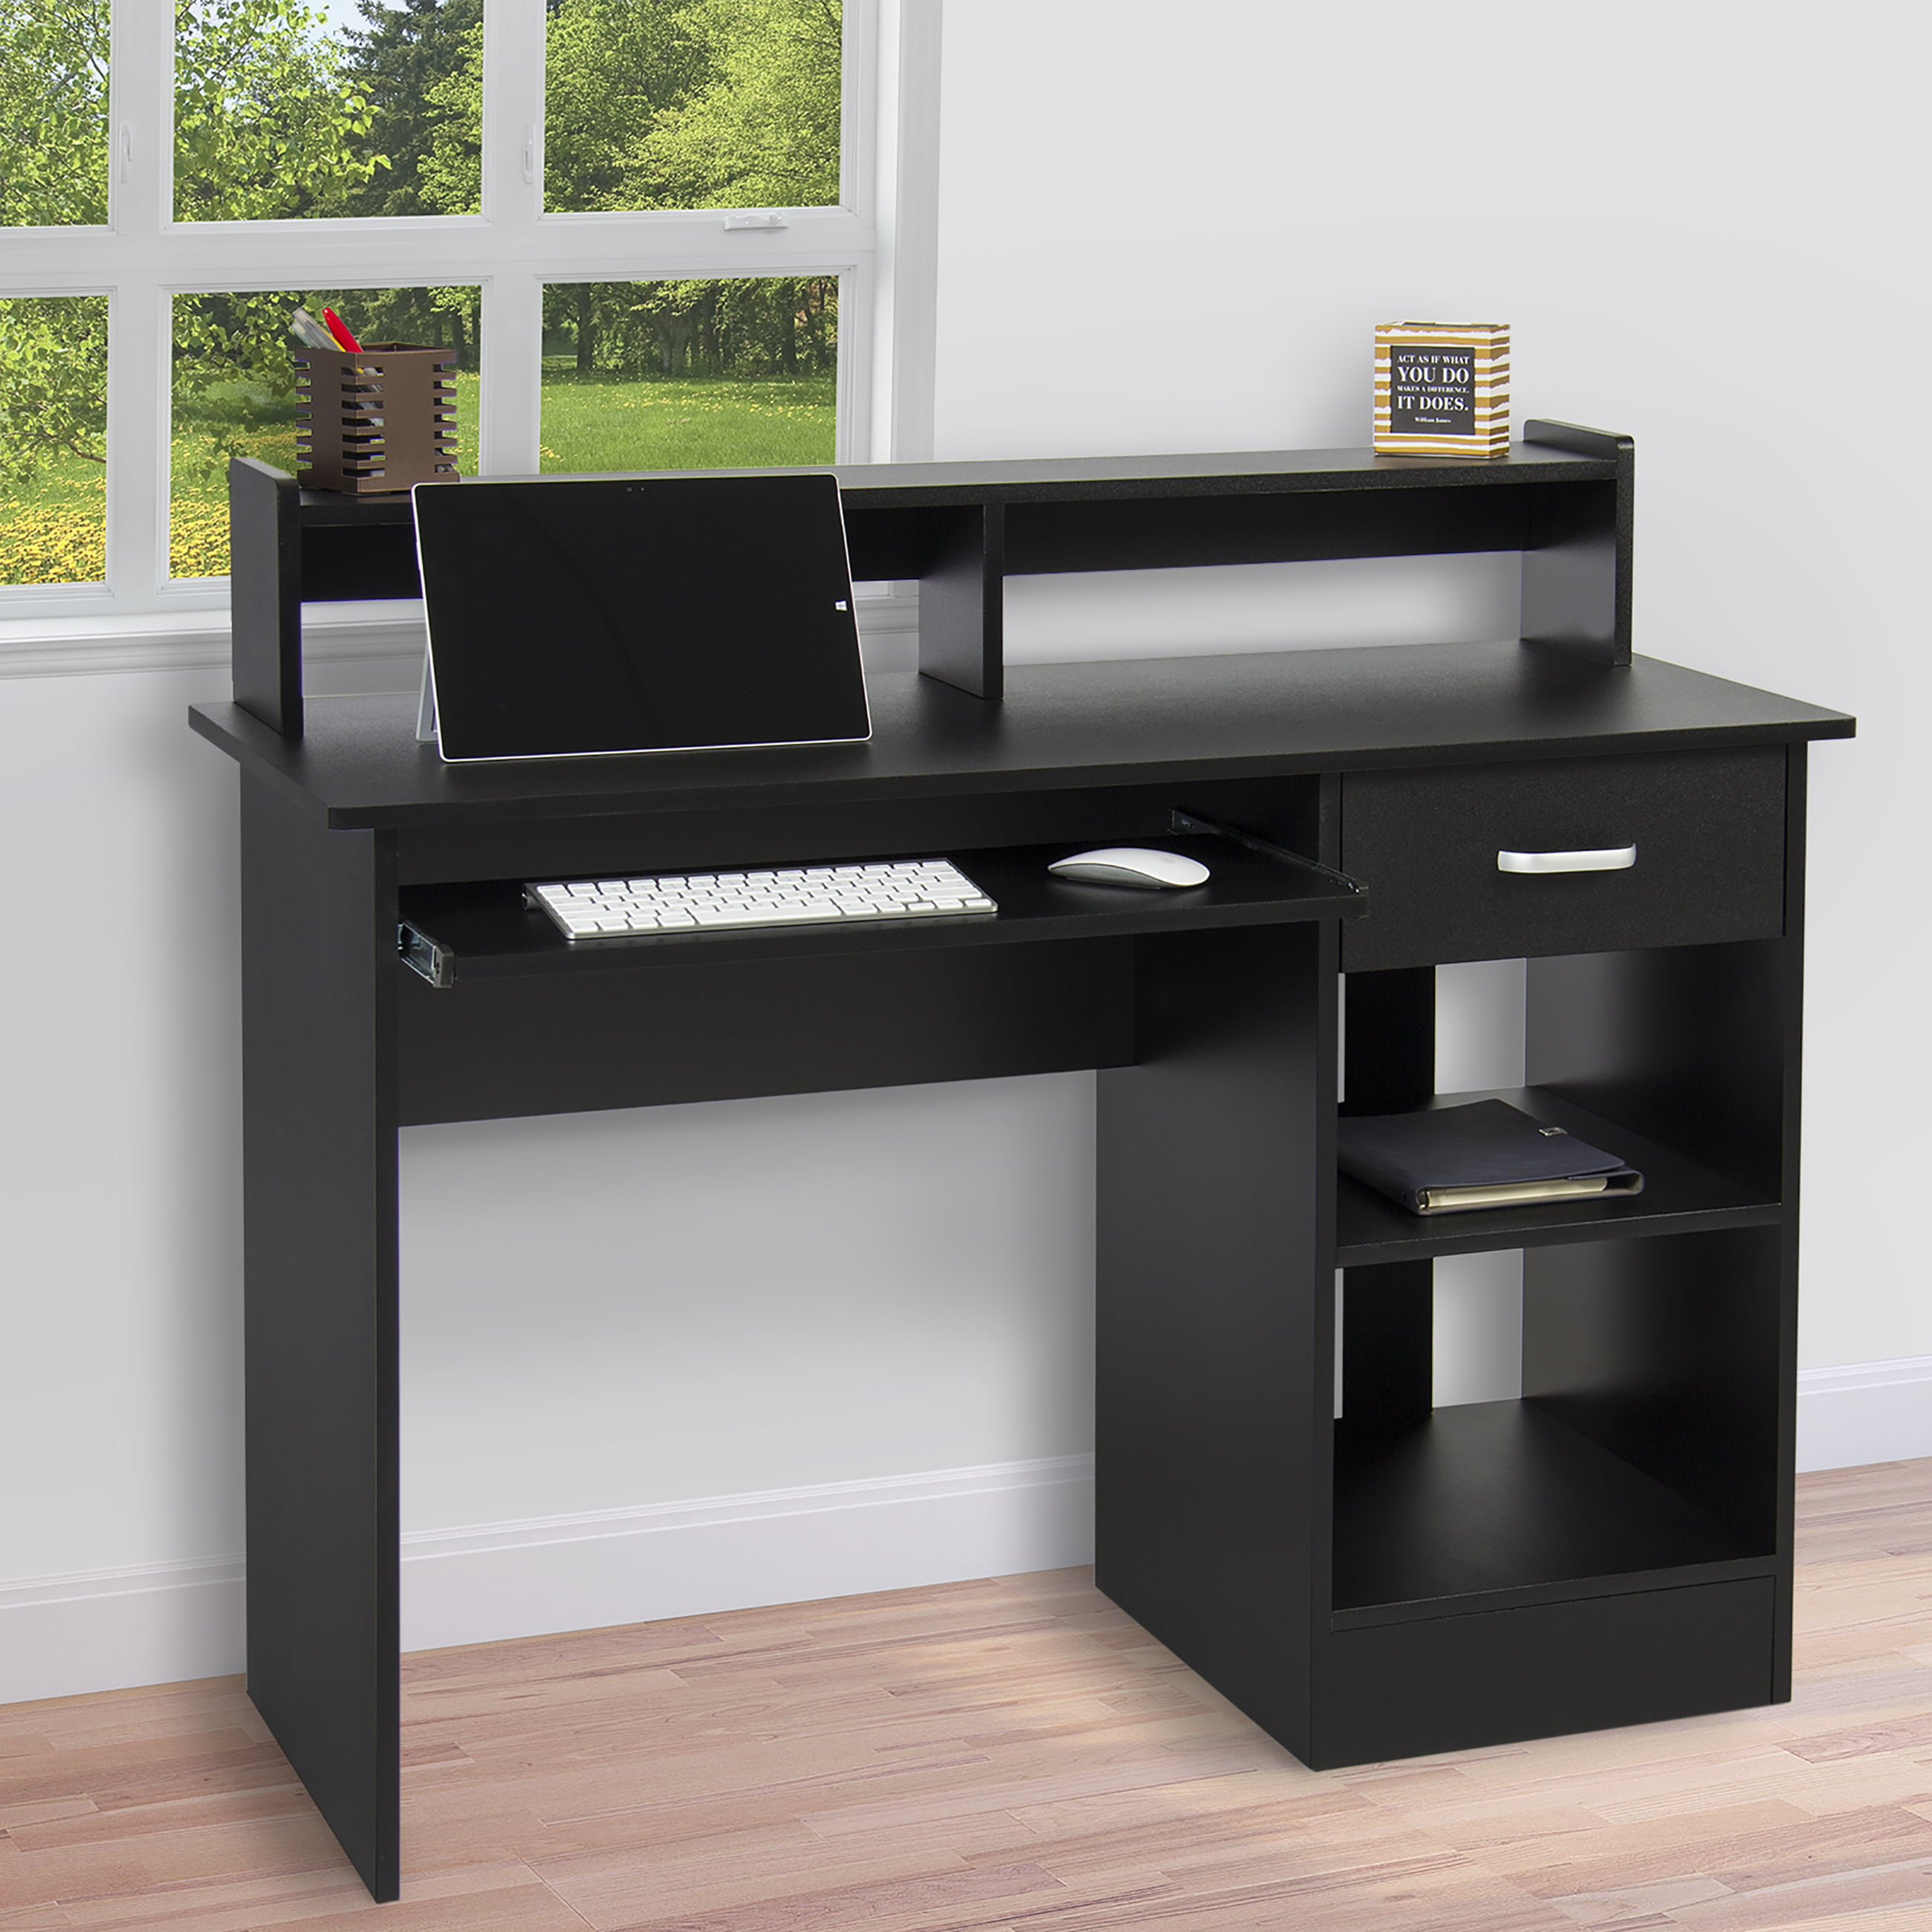 work desks home office. computer desk home laptop table college office furniture work station blk walmartcom desks o